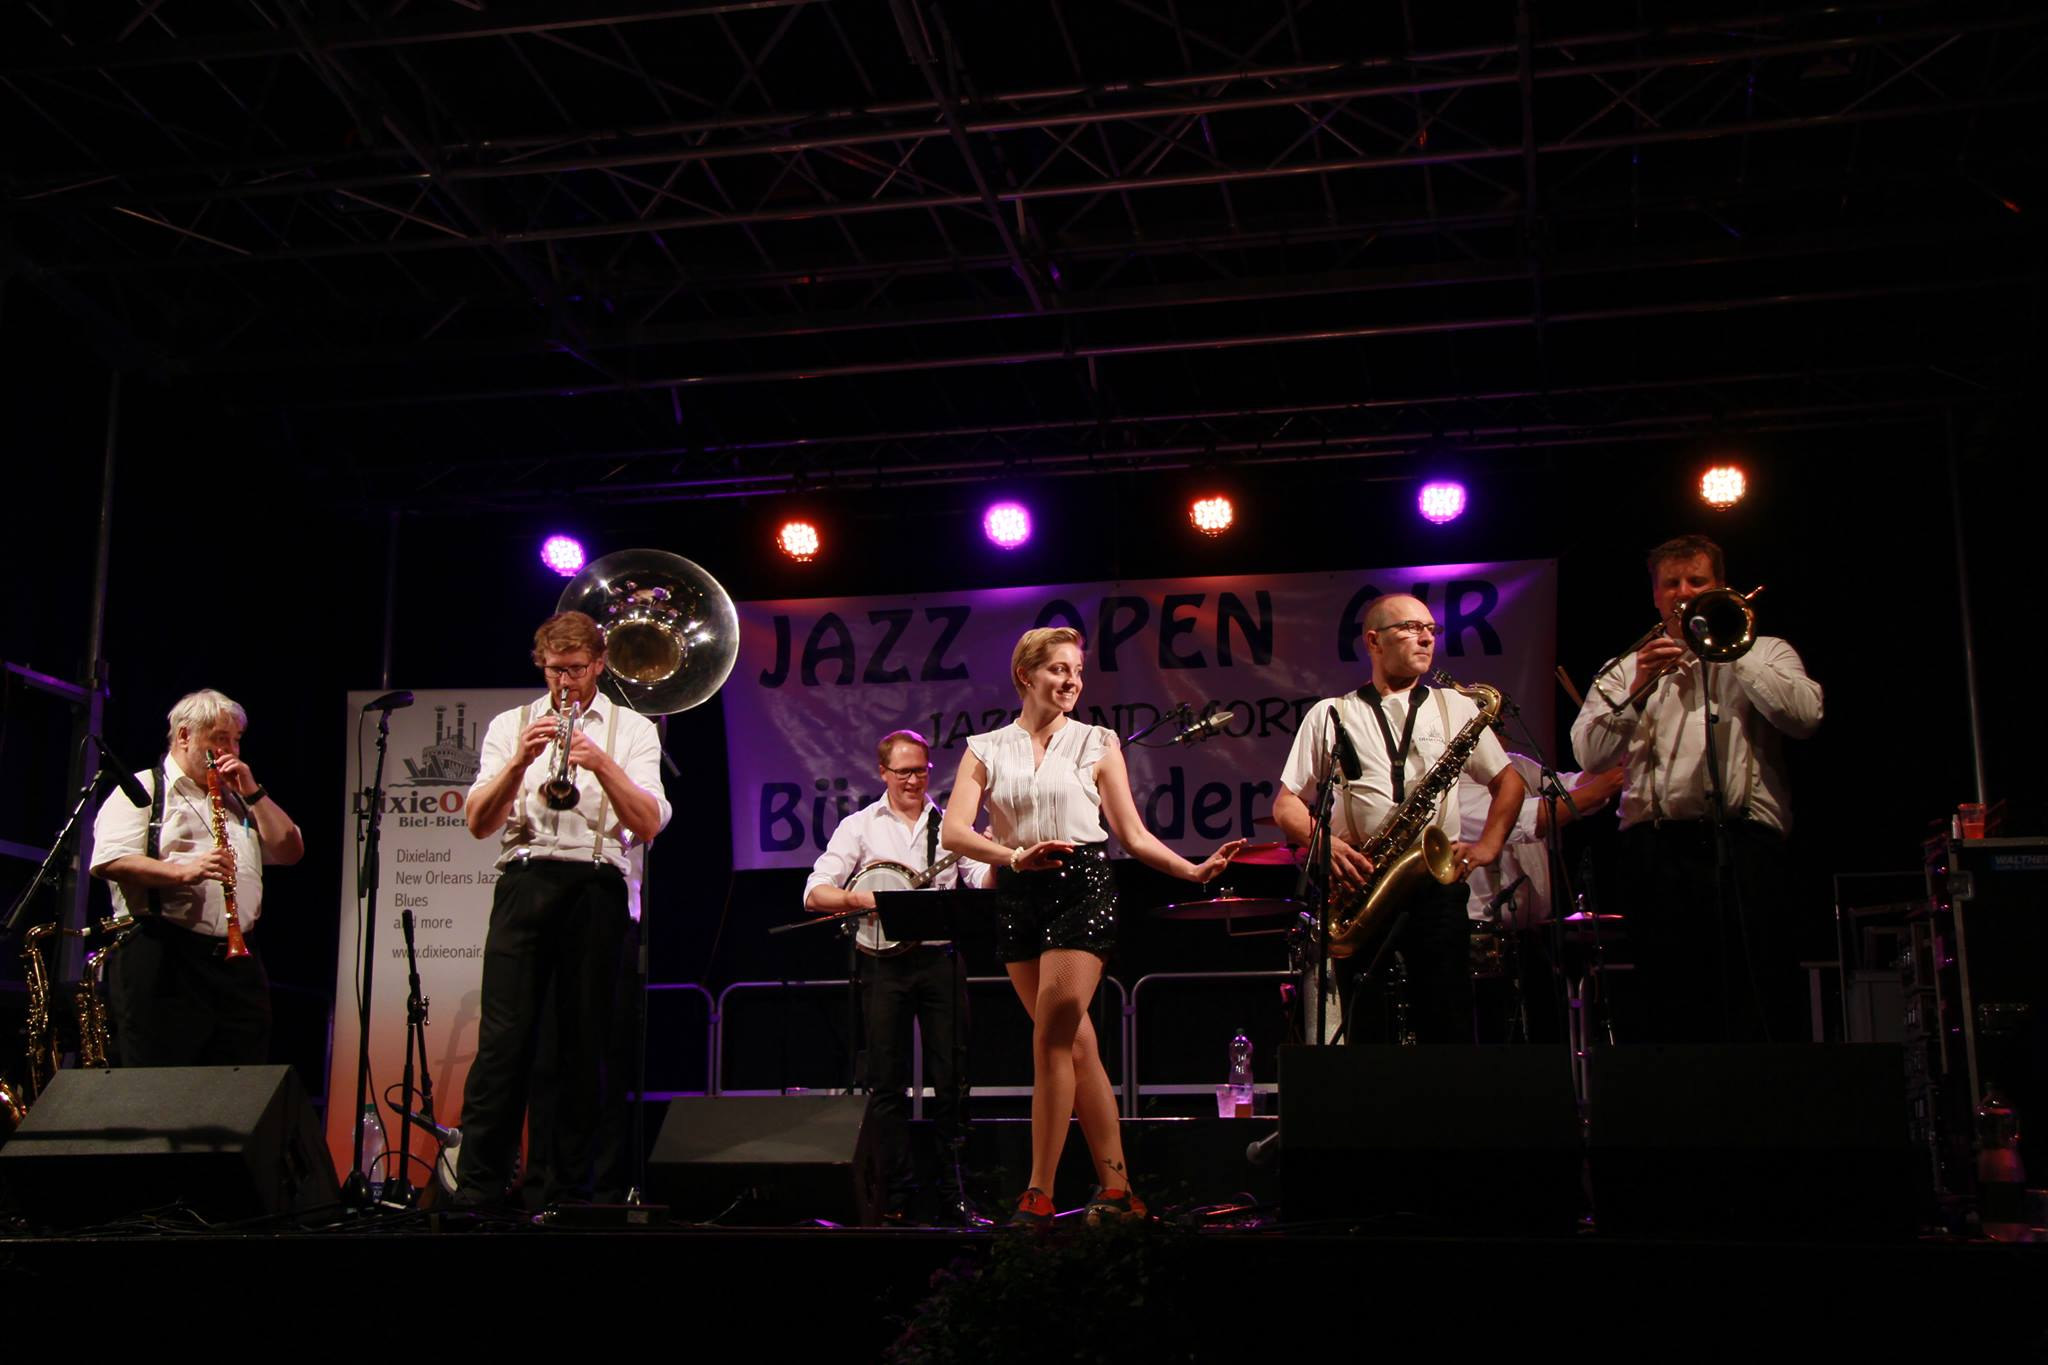 Jazz Open Air Büren 2017